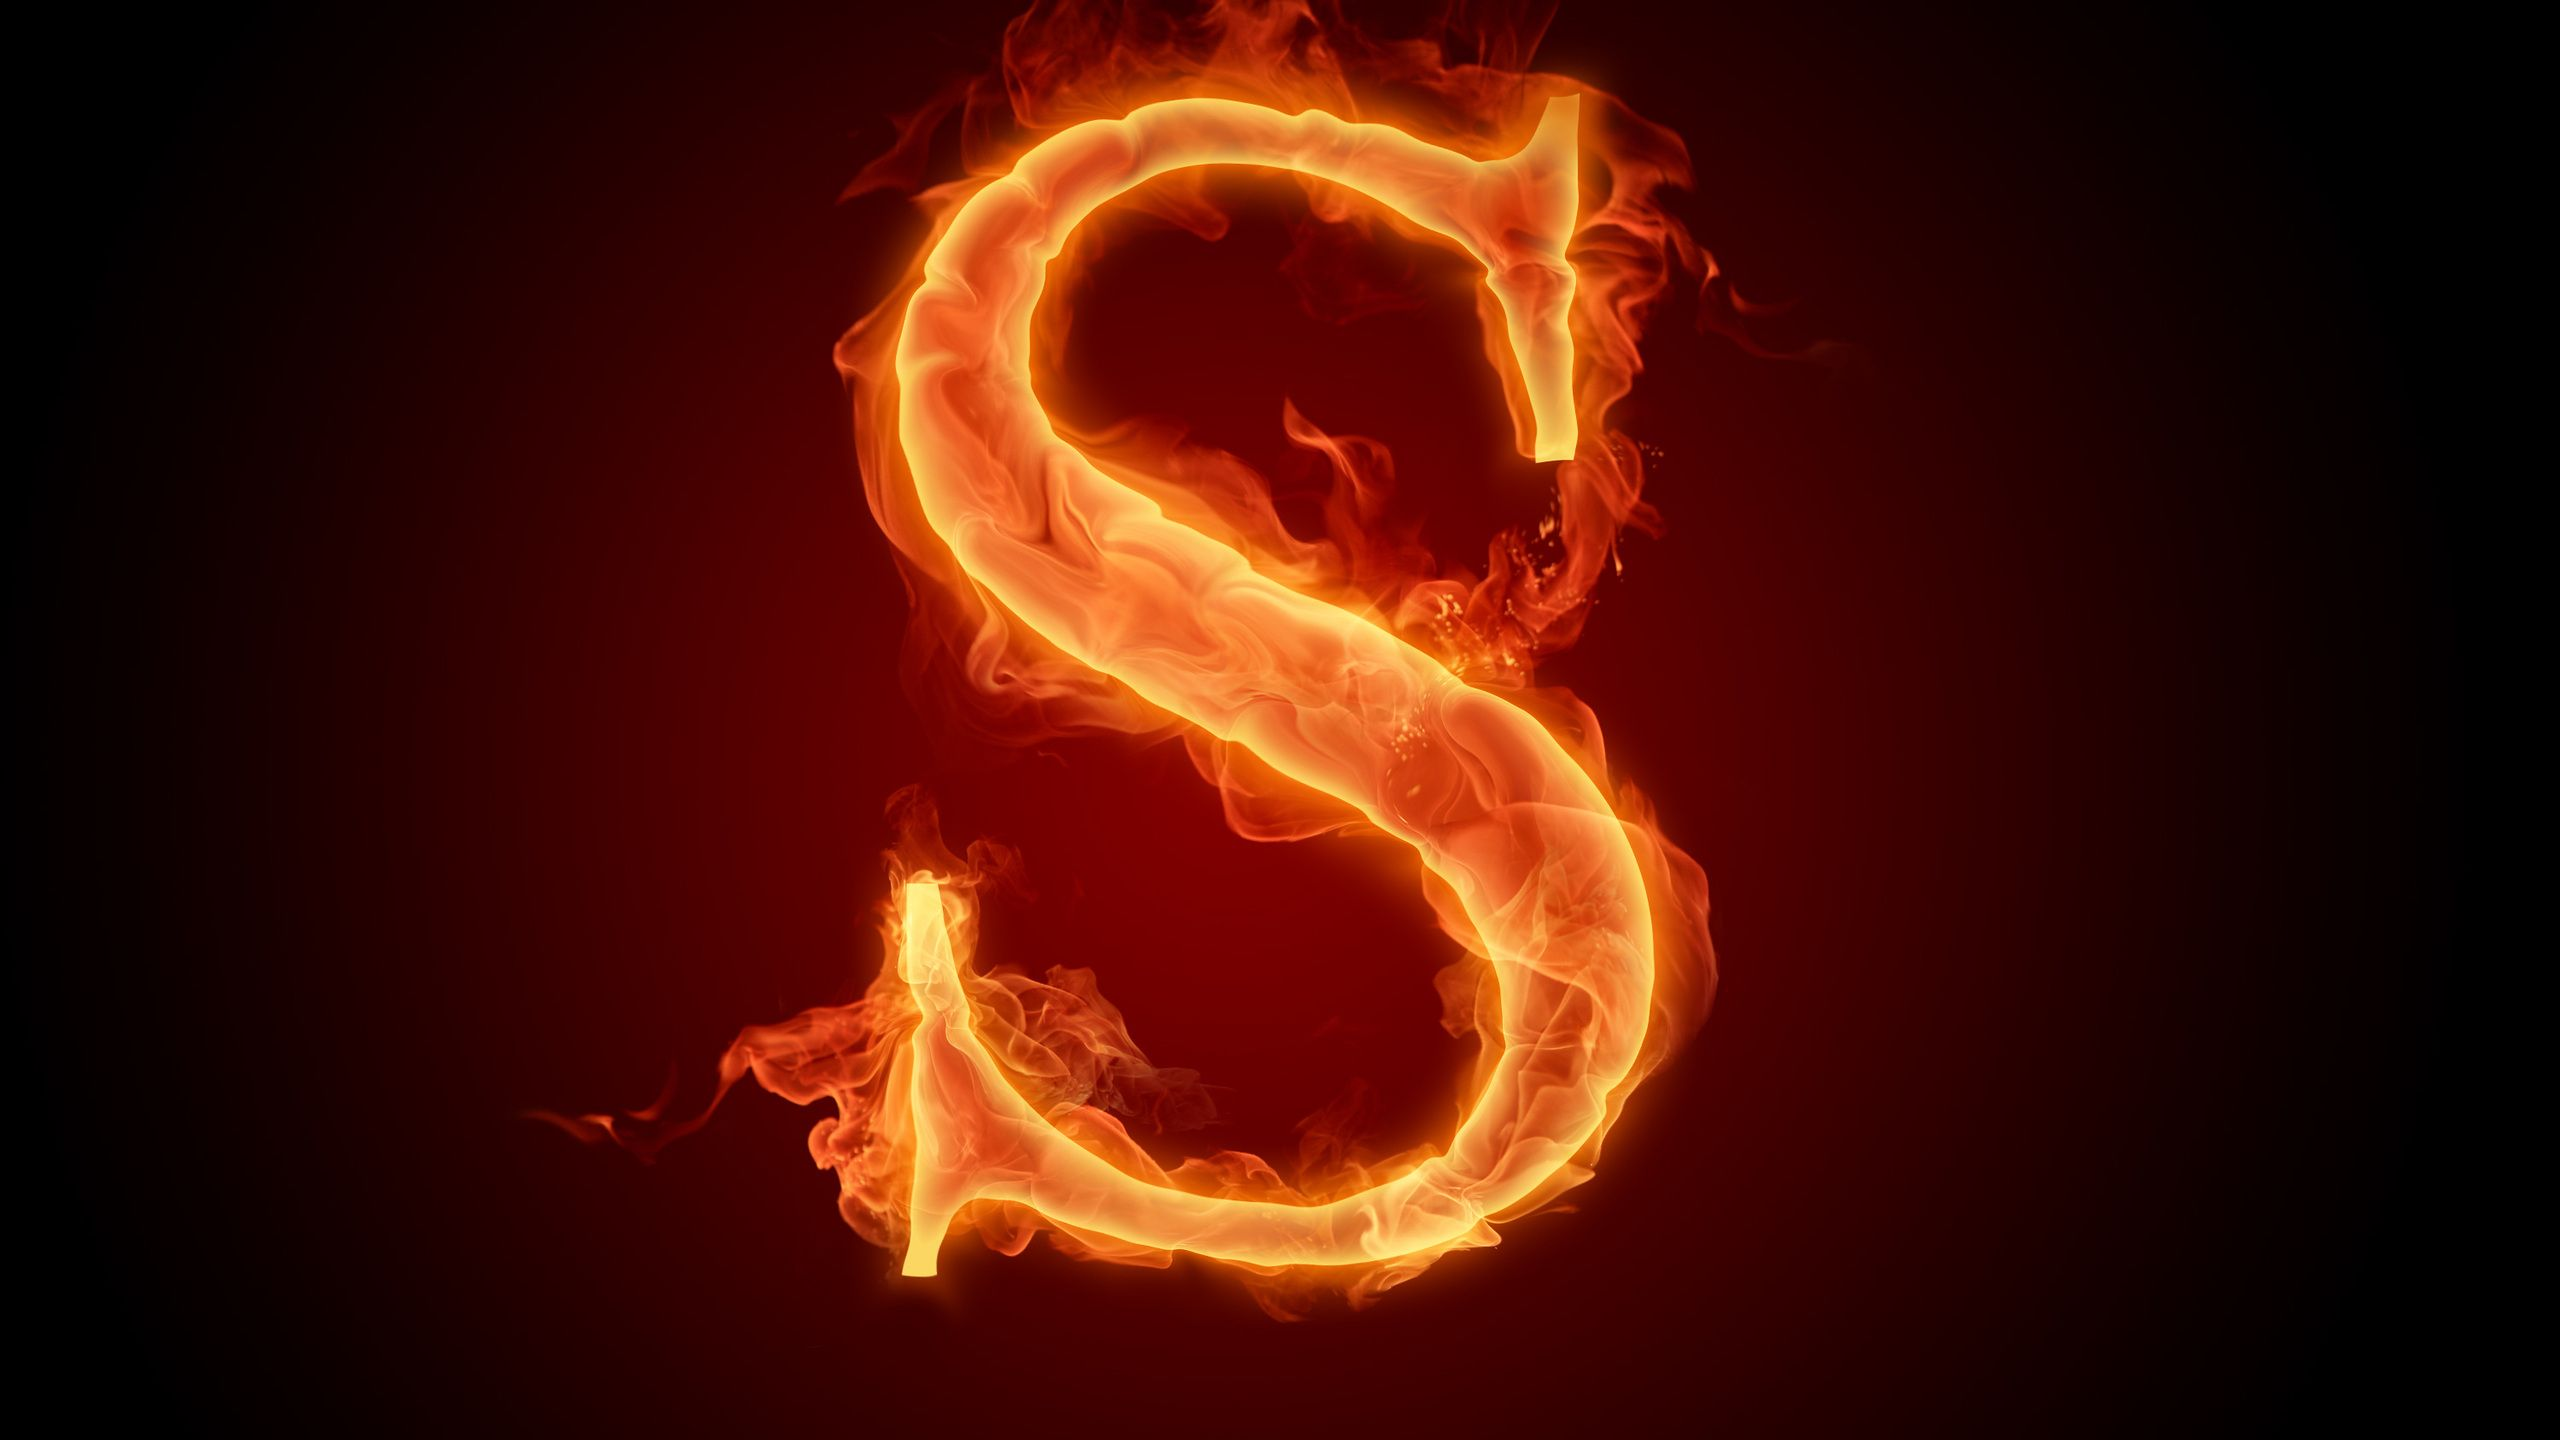 s, alphabet, letter, flame, fire, wallpaper, letter photo